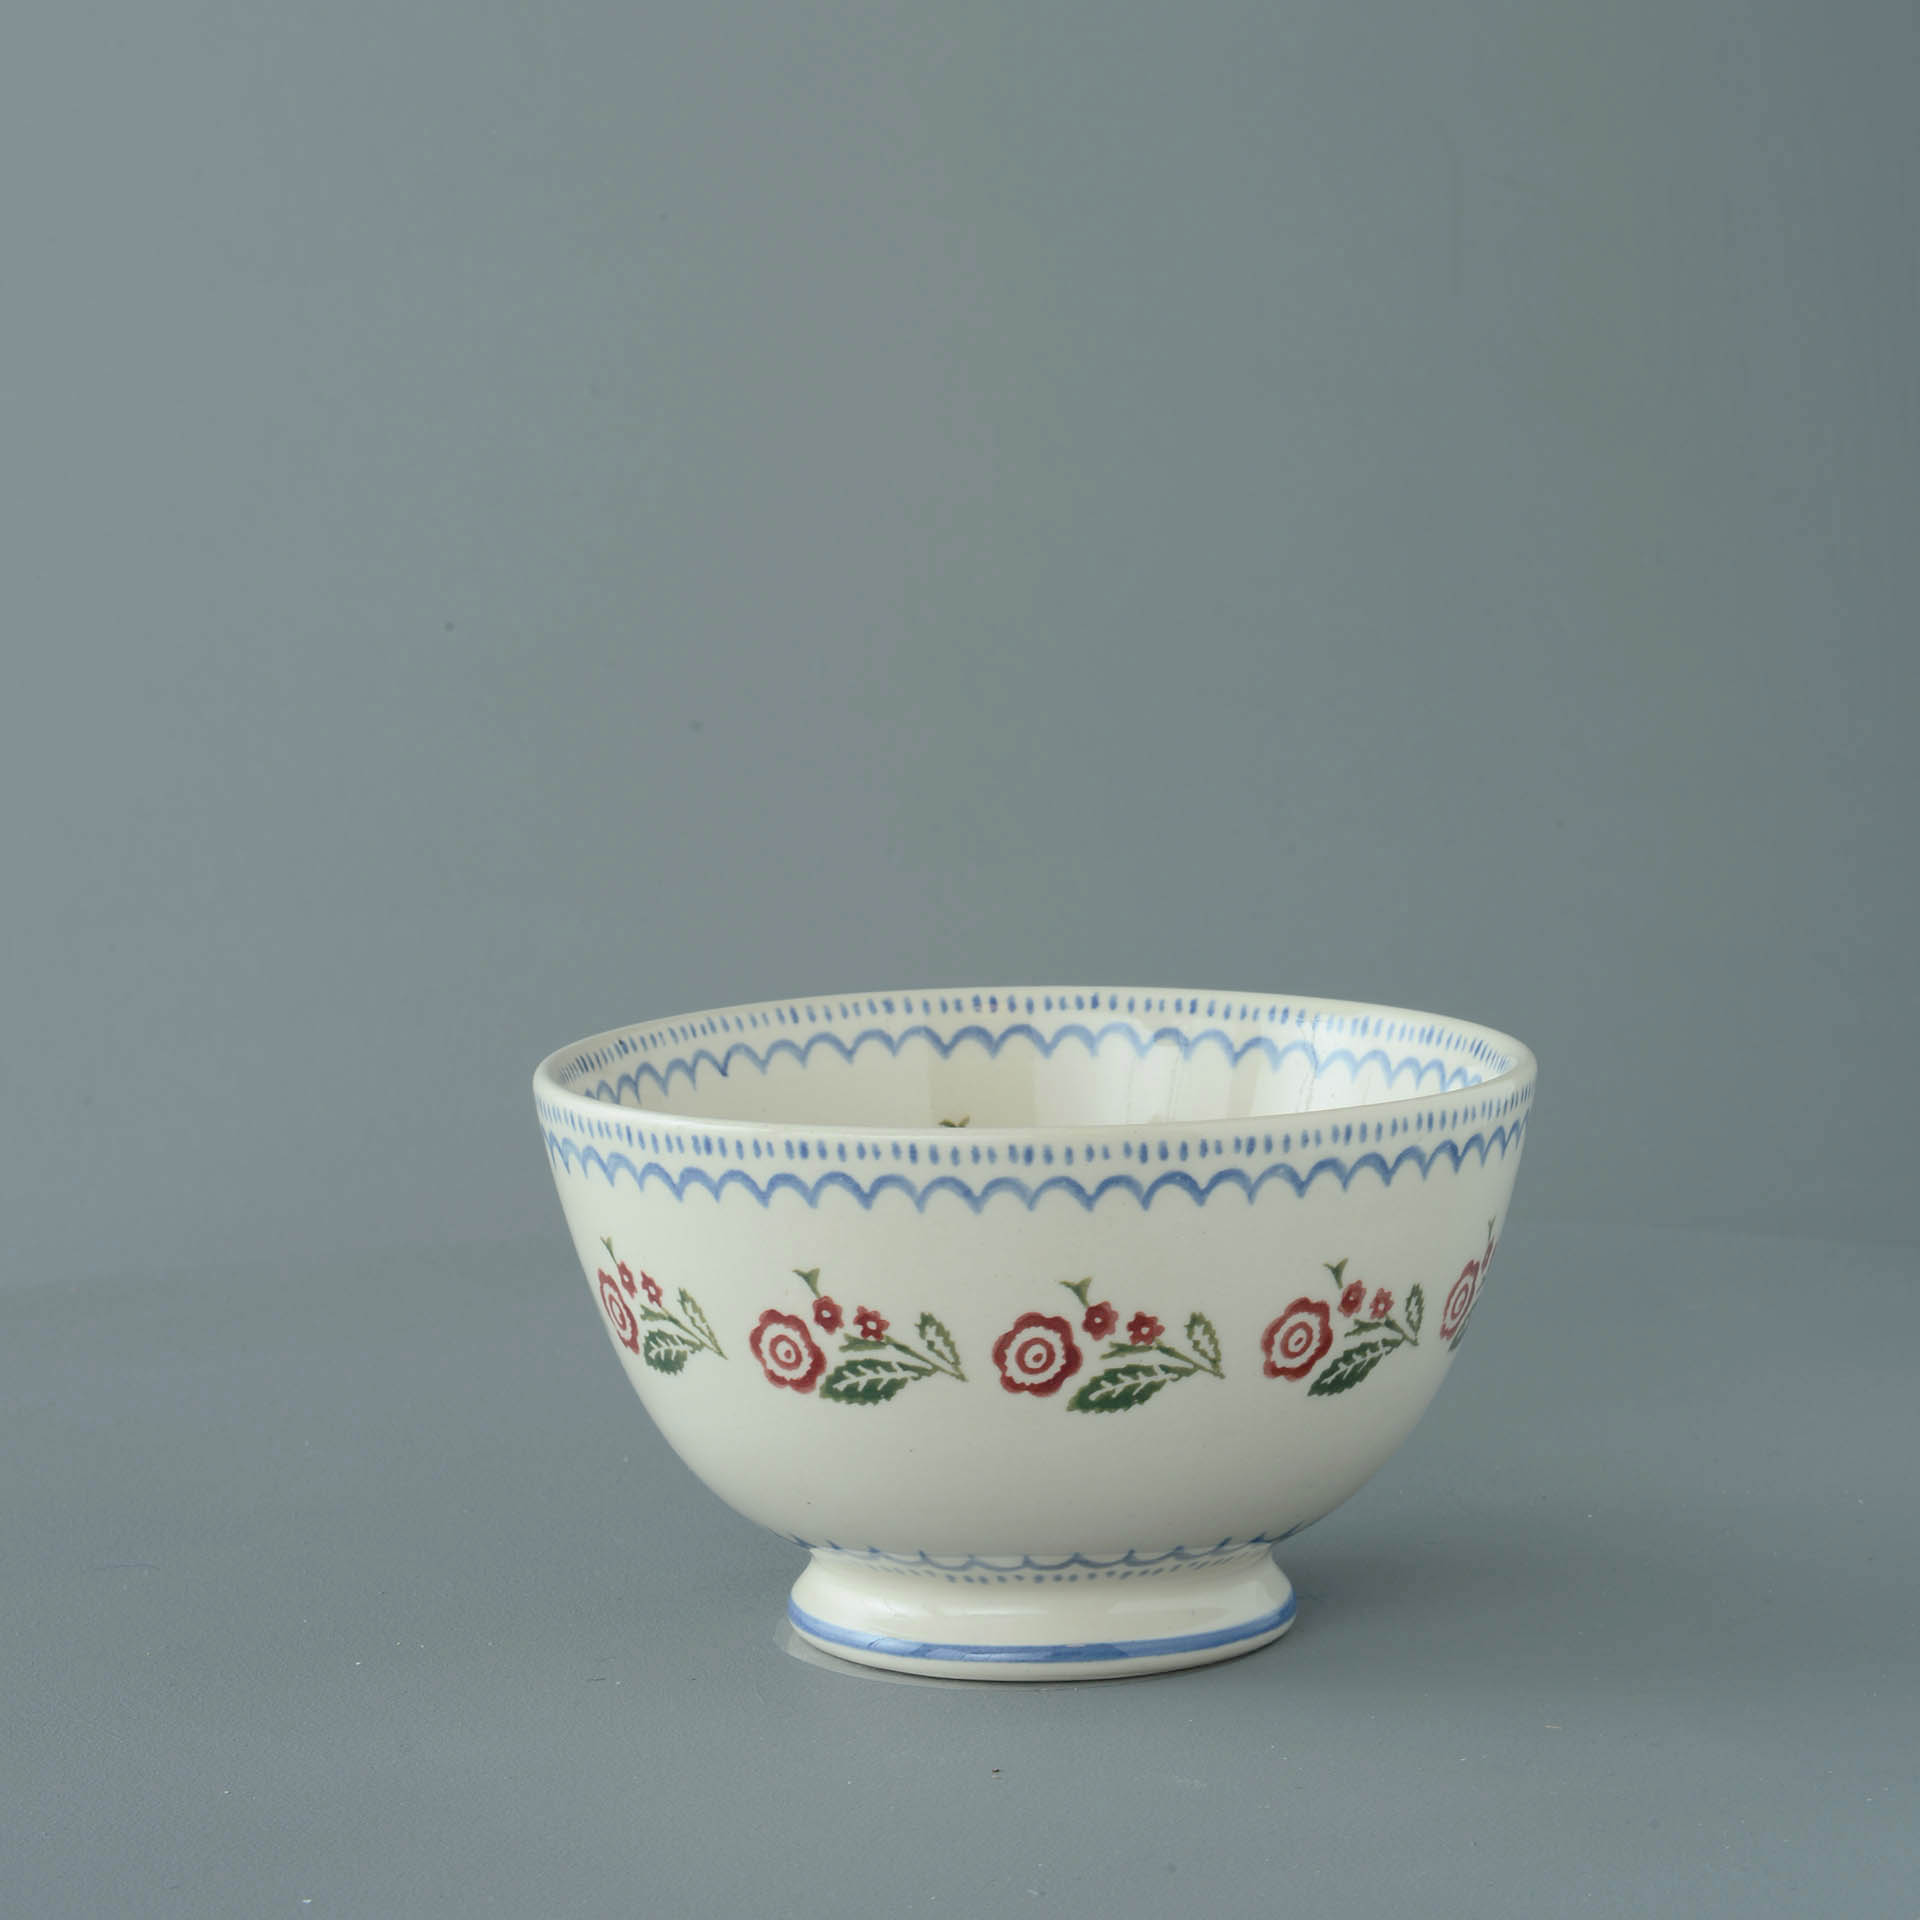 Creeping Briar Soup Bowl 9 x 15.5cm